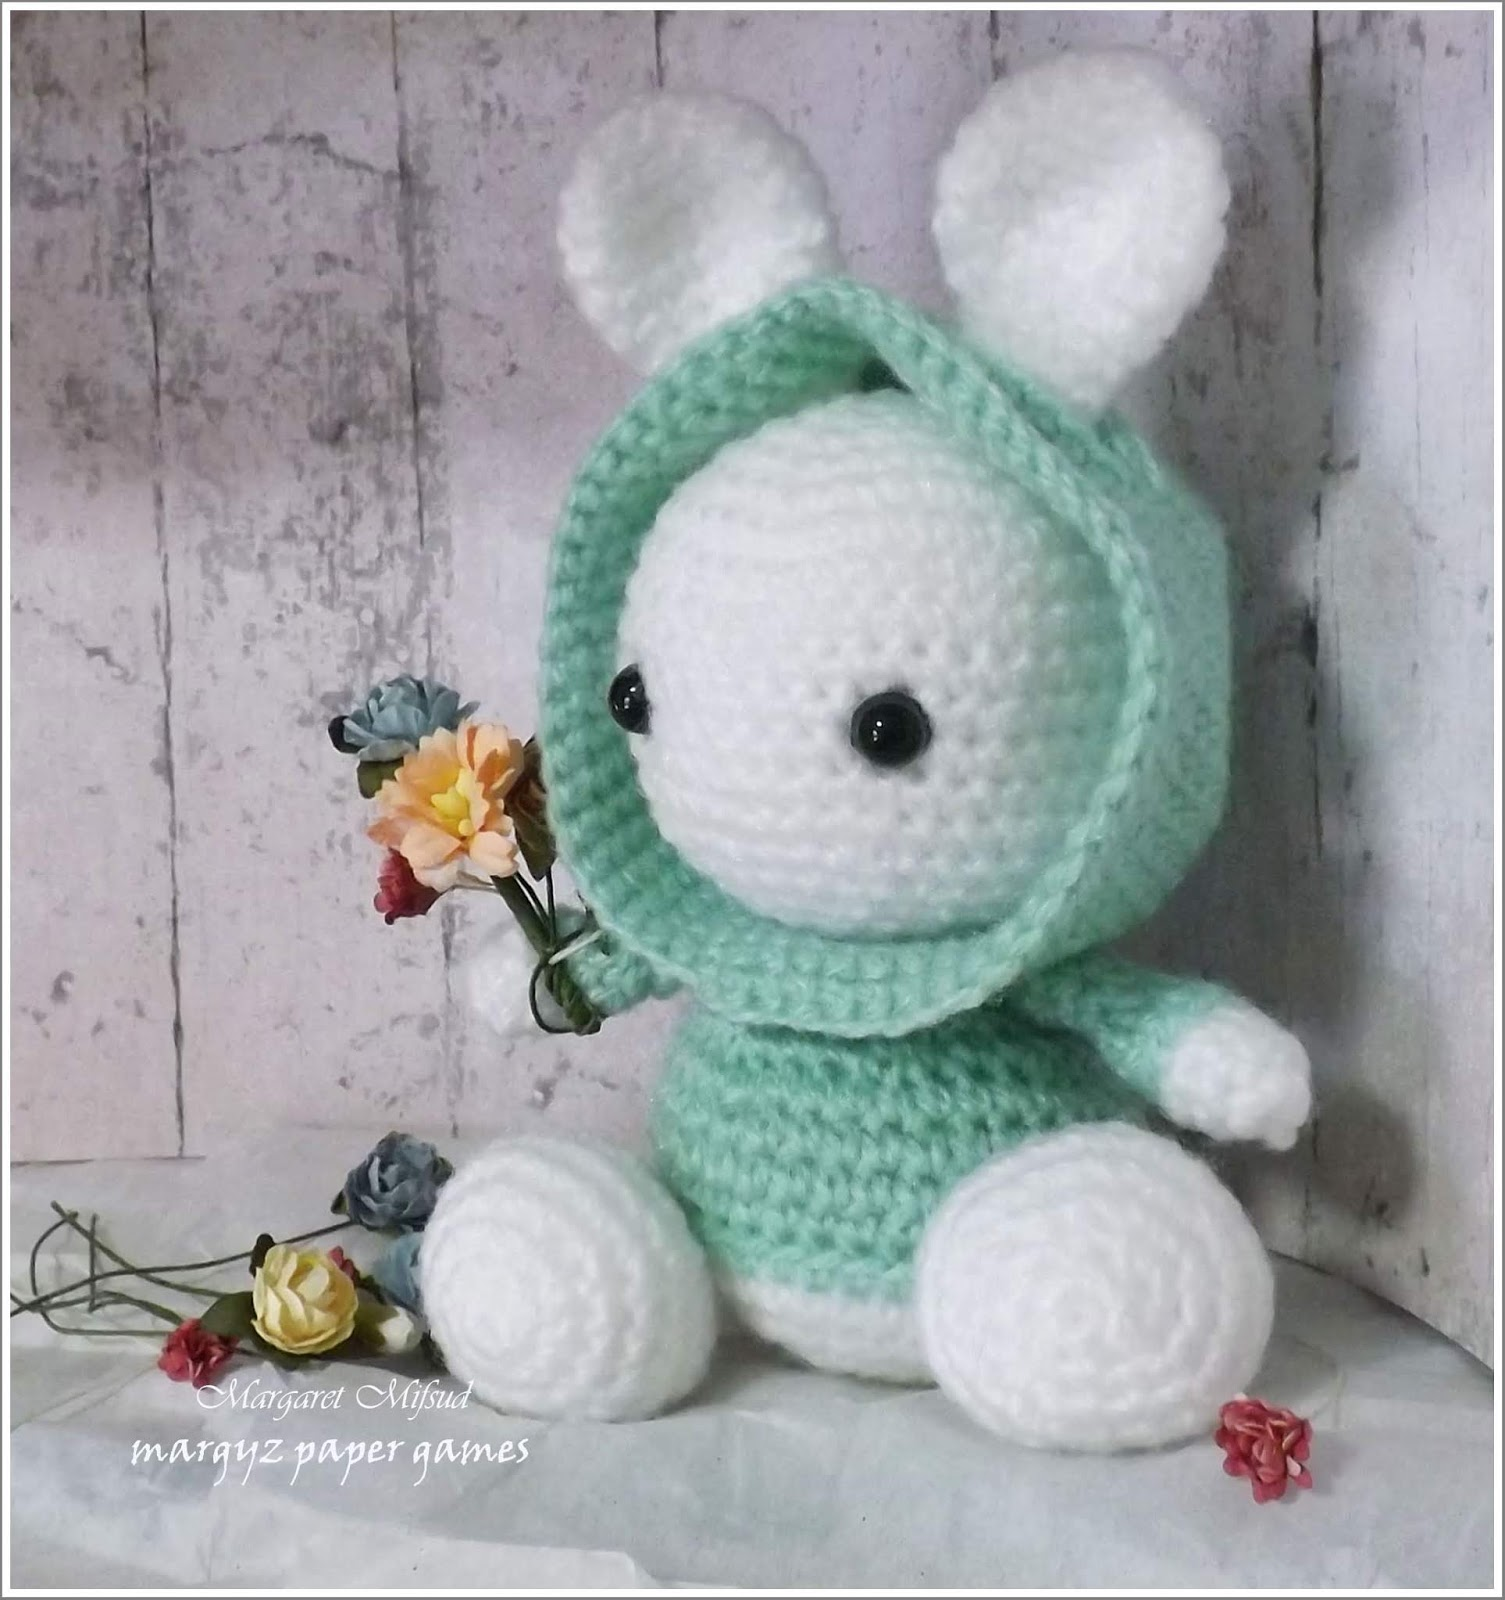 Carrot Dress For Dress Me Bunny (Amigurumi To Go!) | Crochet ... | 1600x1505